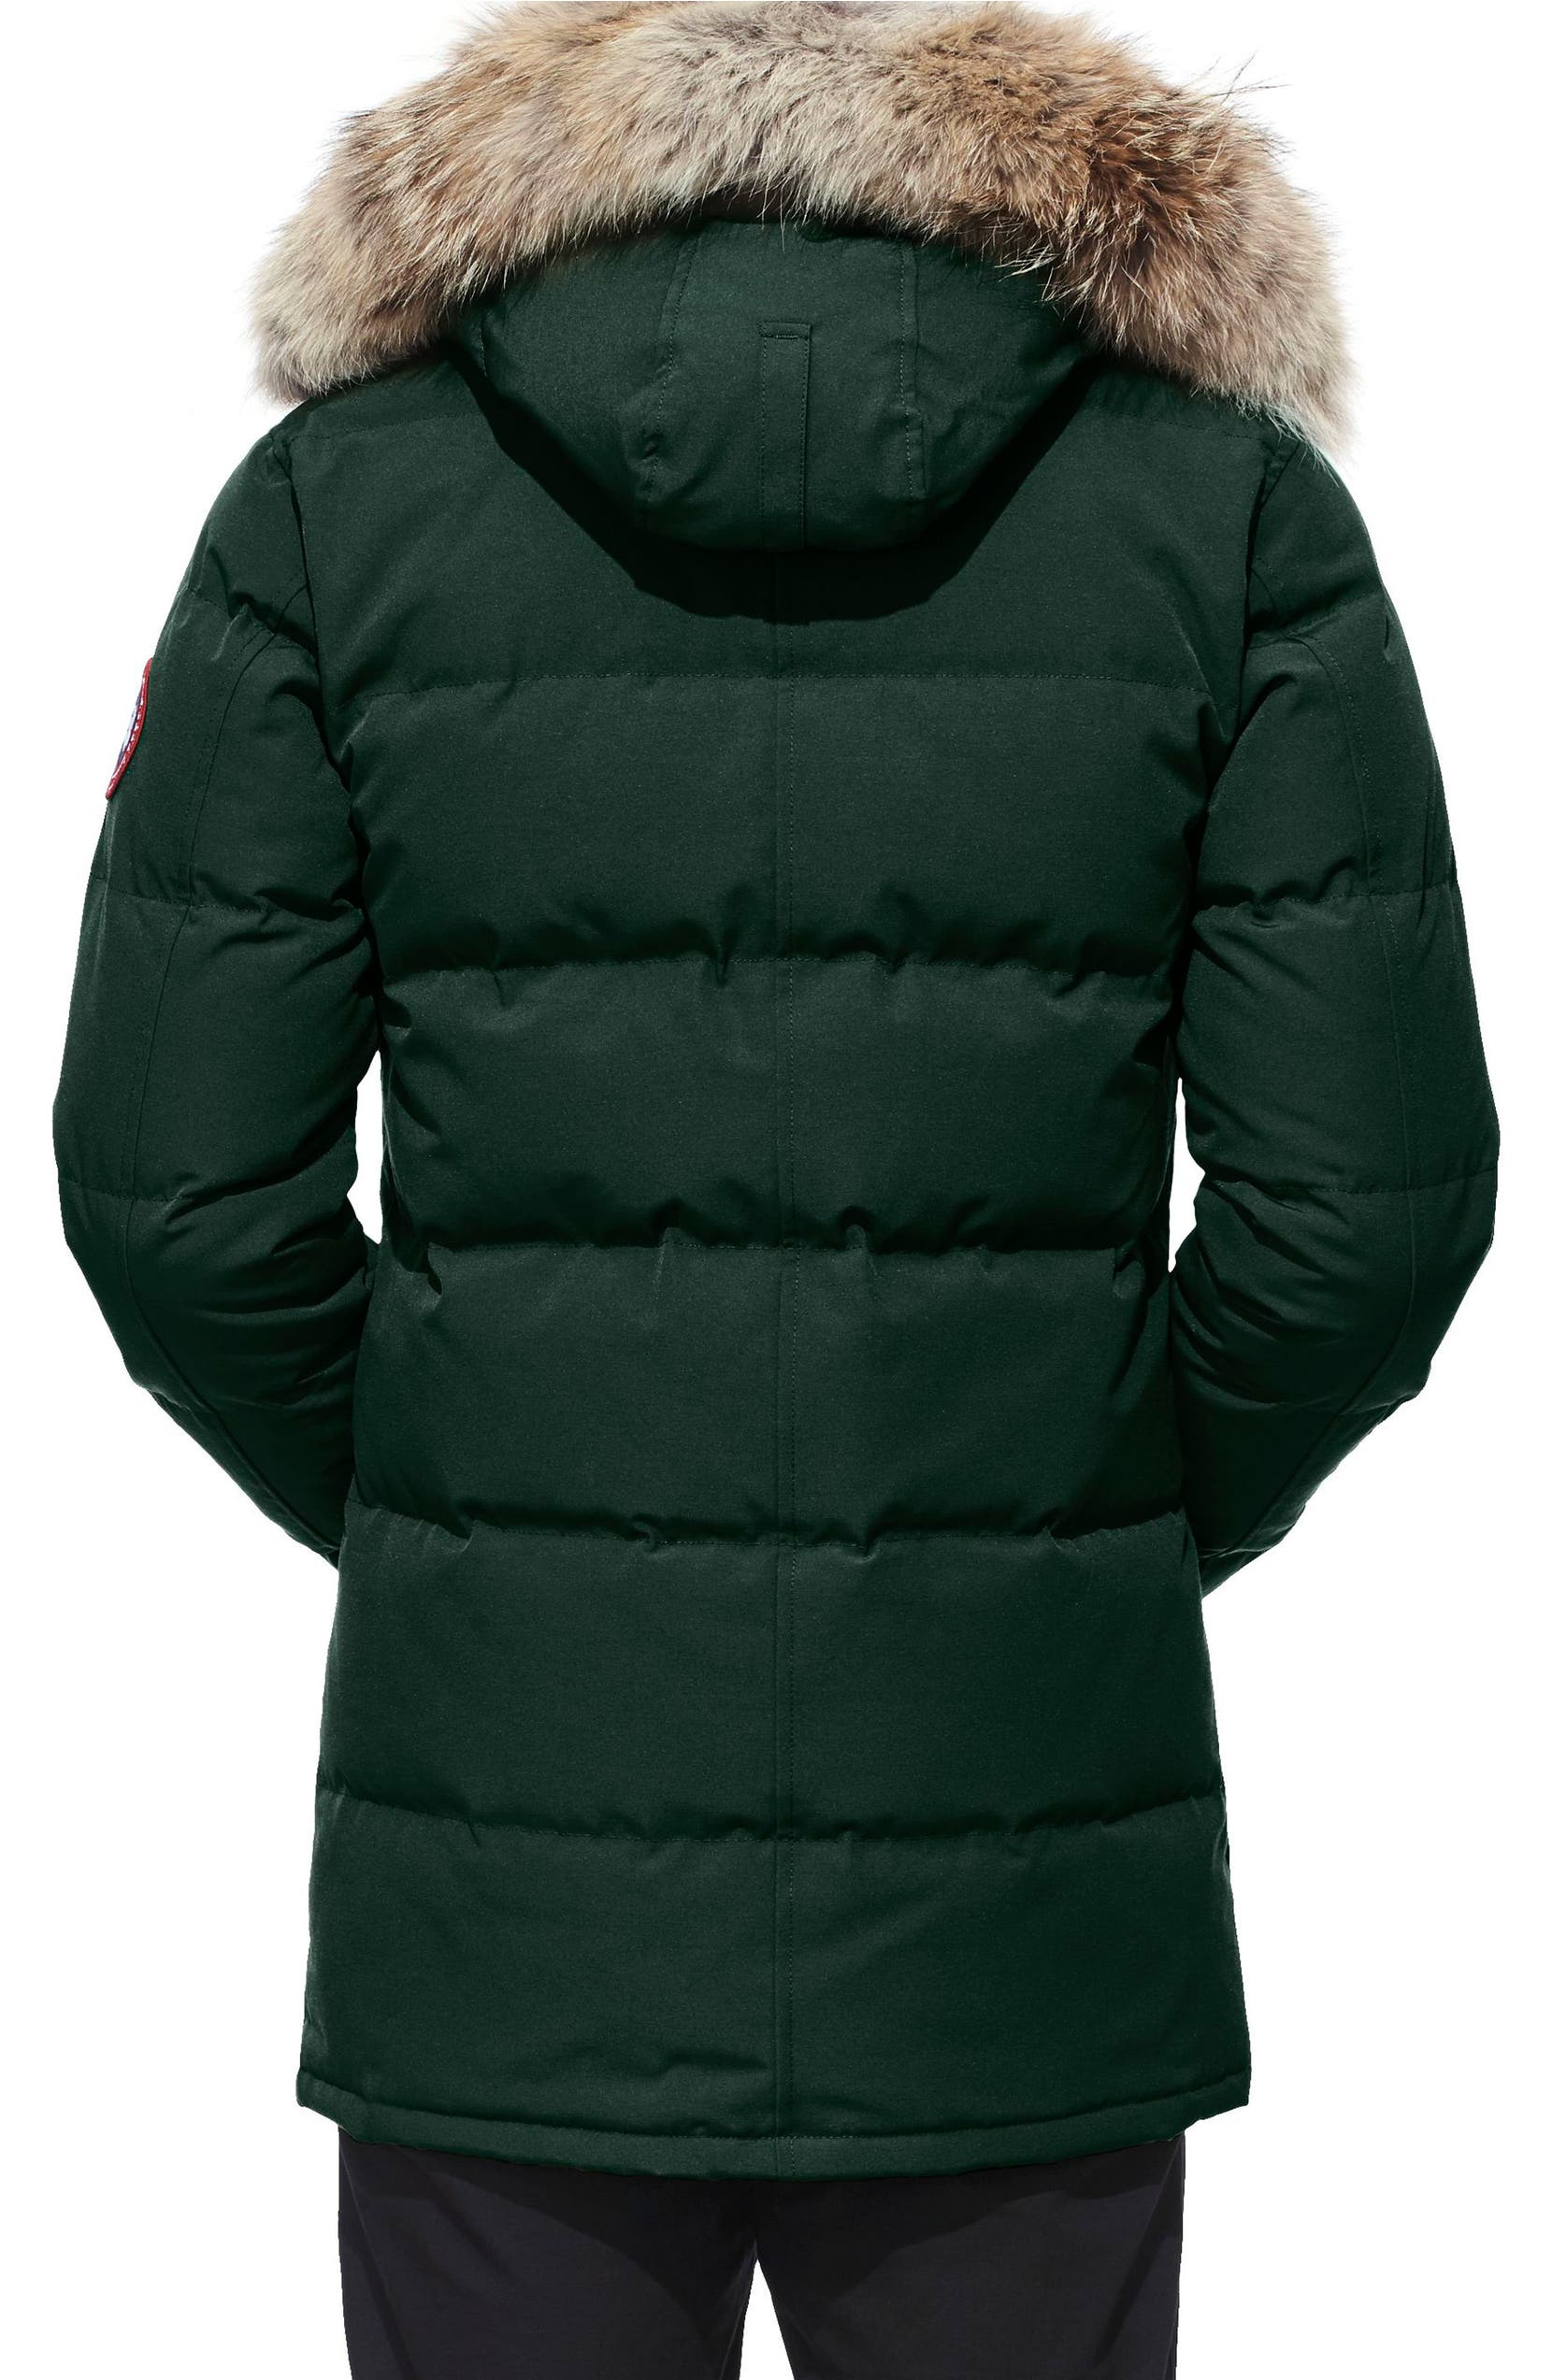 Canada Goose  Carson  Slim Fit Hooded Packable Parka with Genuine Coyote  Fur Trim  1eee6d52b0f5